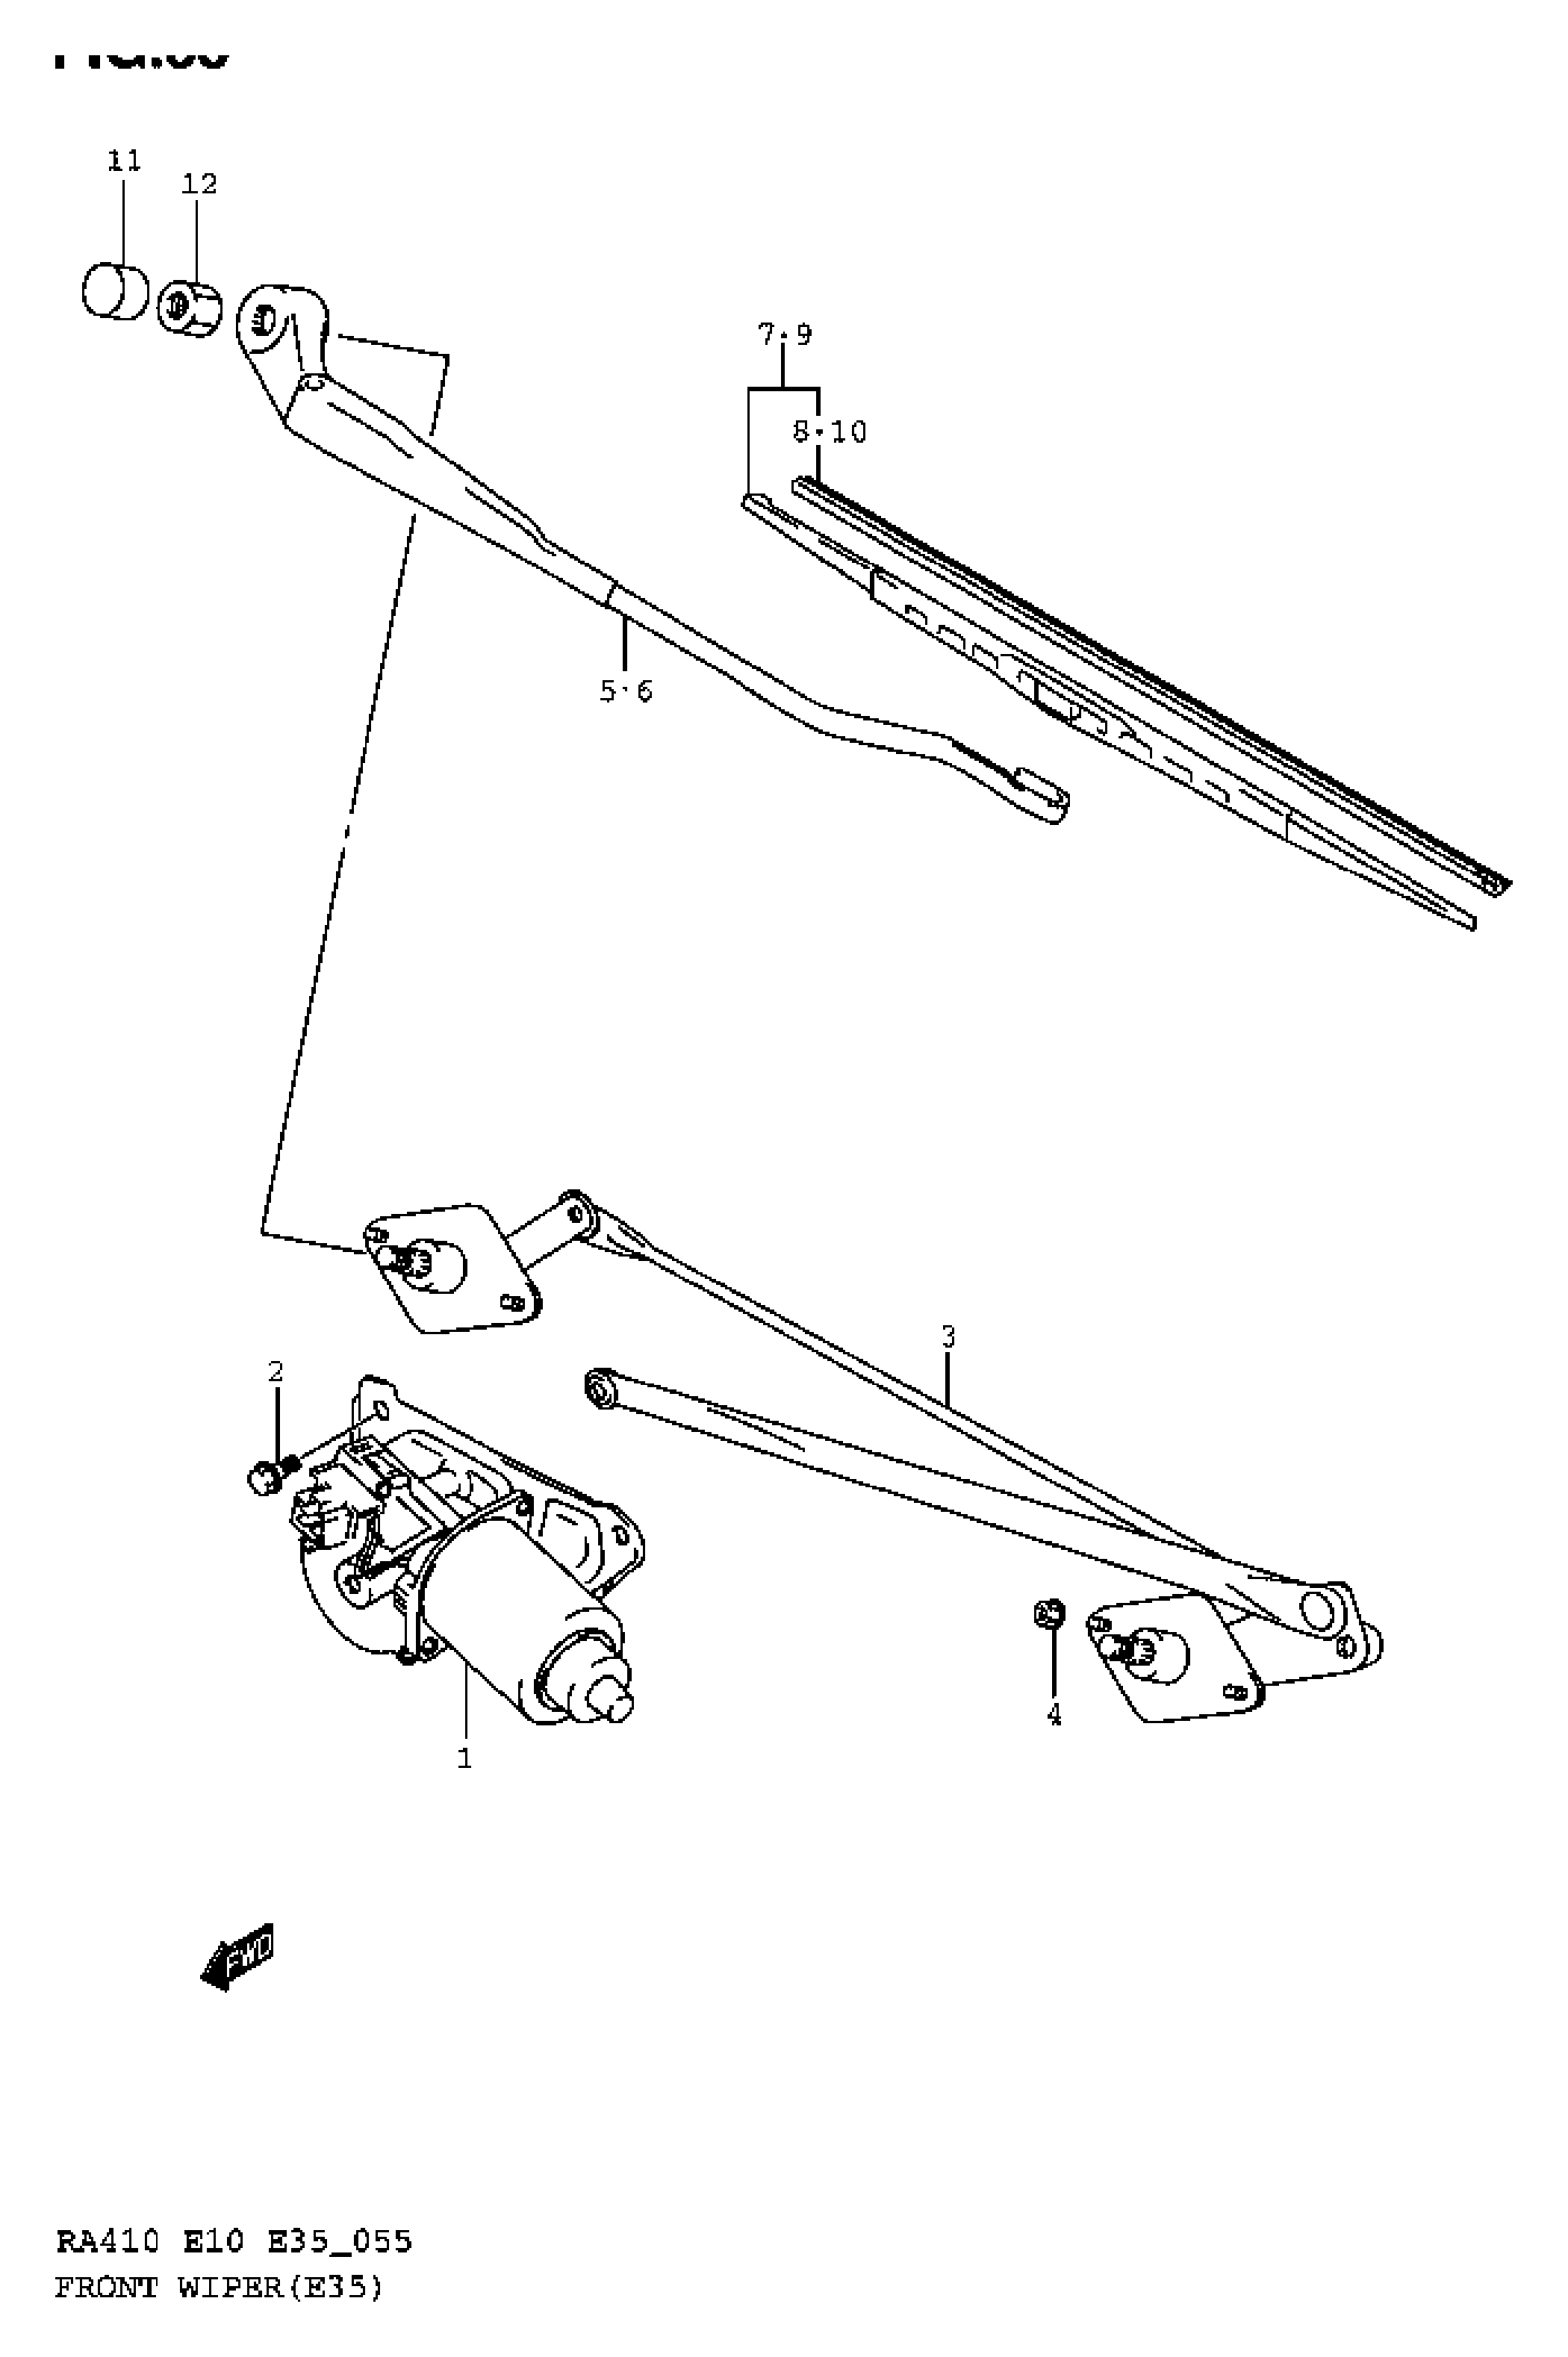 FRONT WINDOW WIPER (E35)